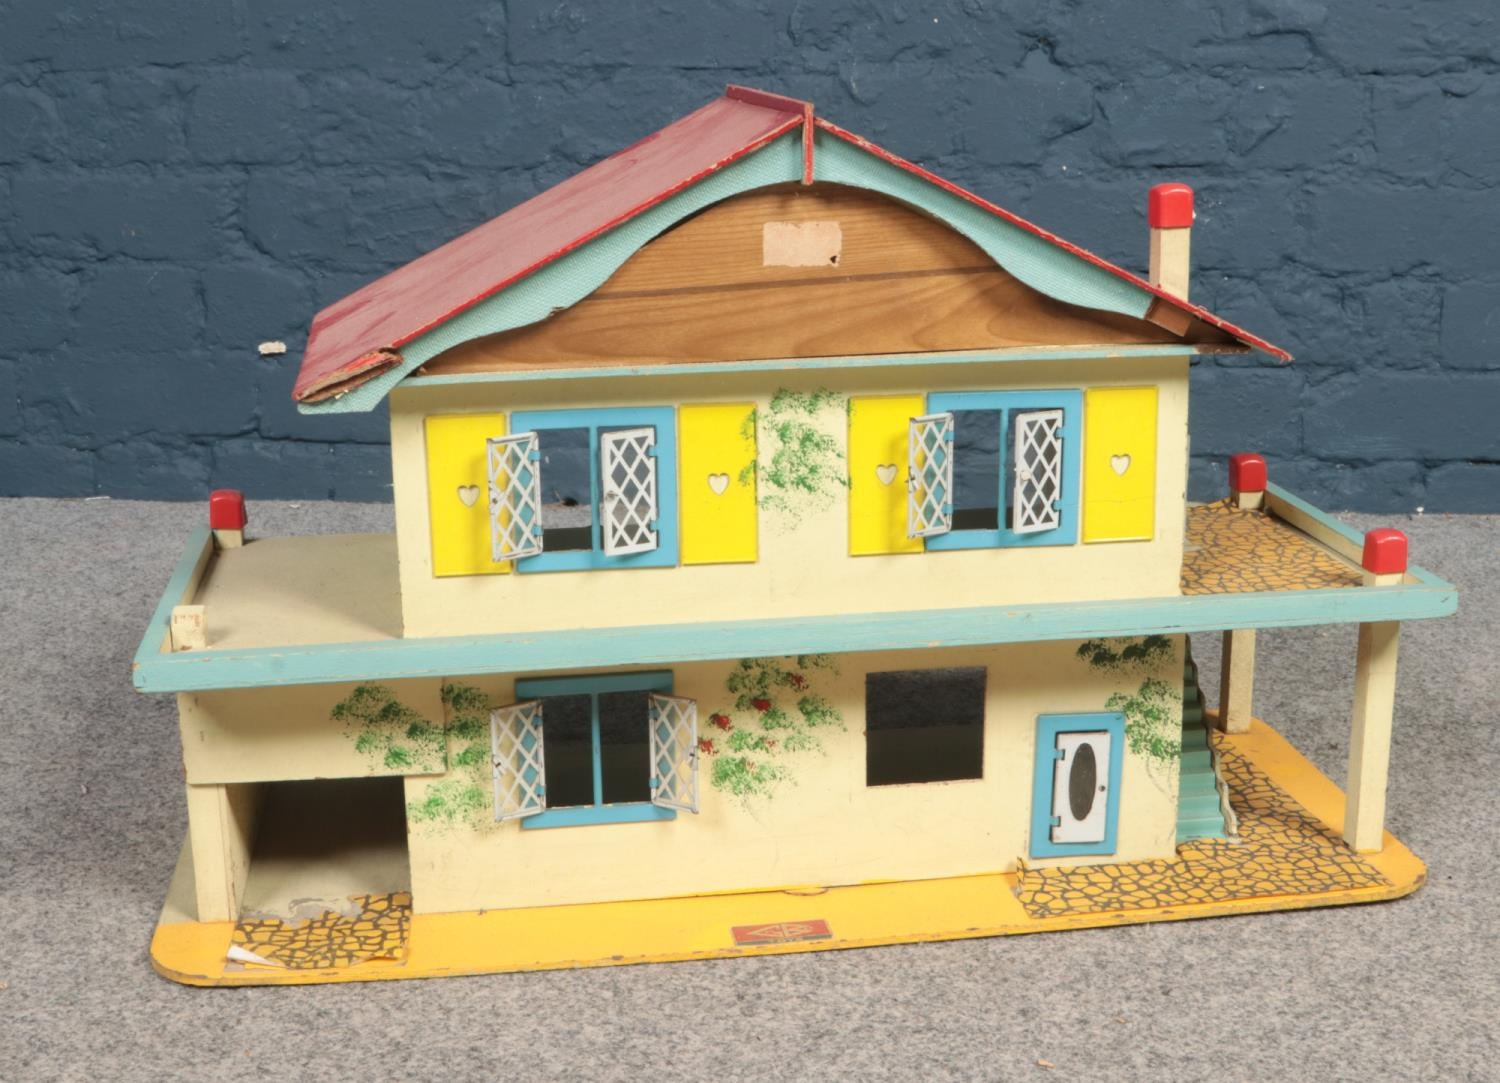 A Gee Bee Toys wooden dolls house. (68cm width, 42cm height, 29cm depth) Age/play worn